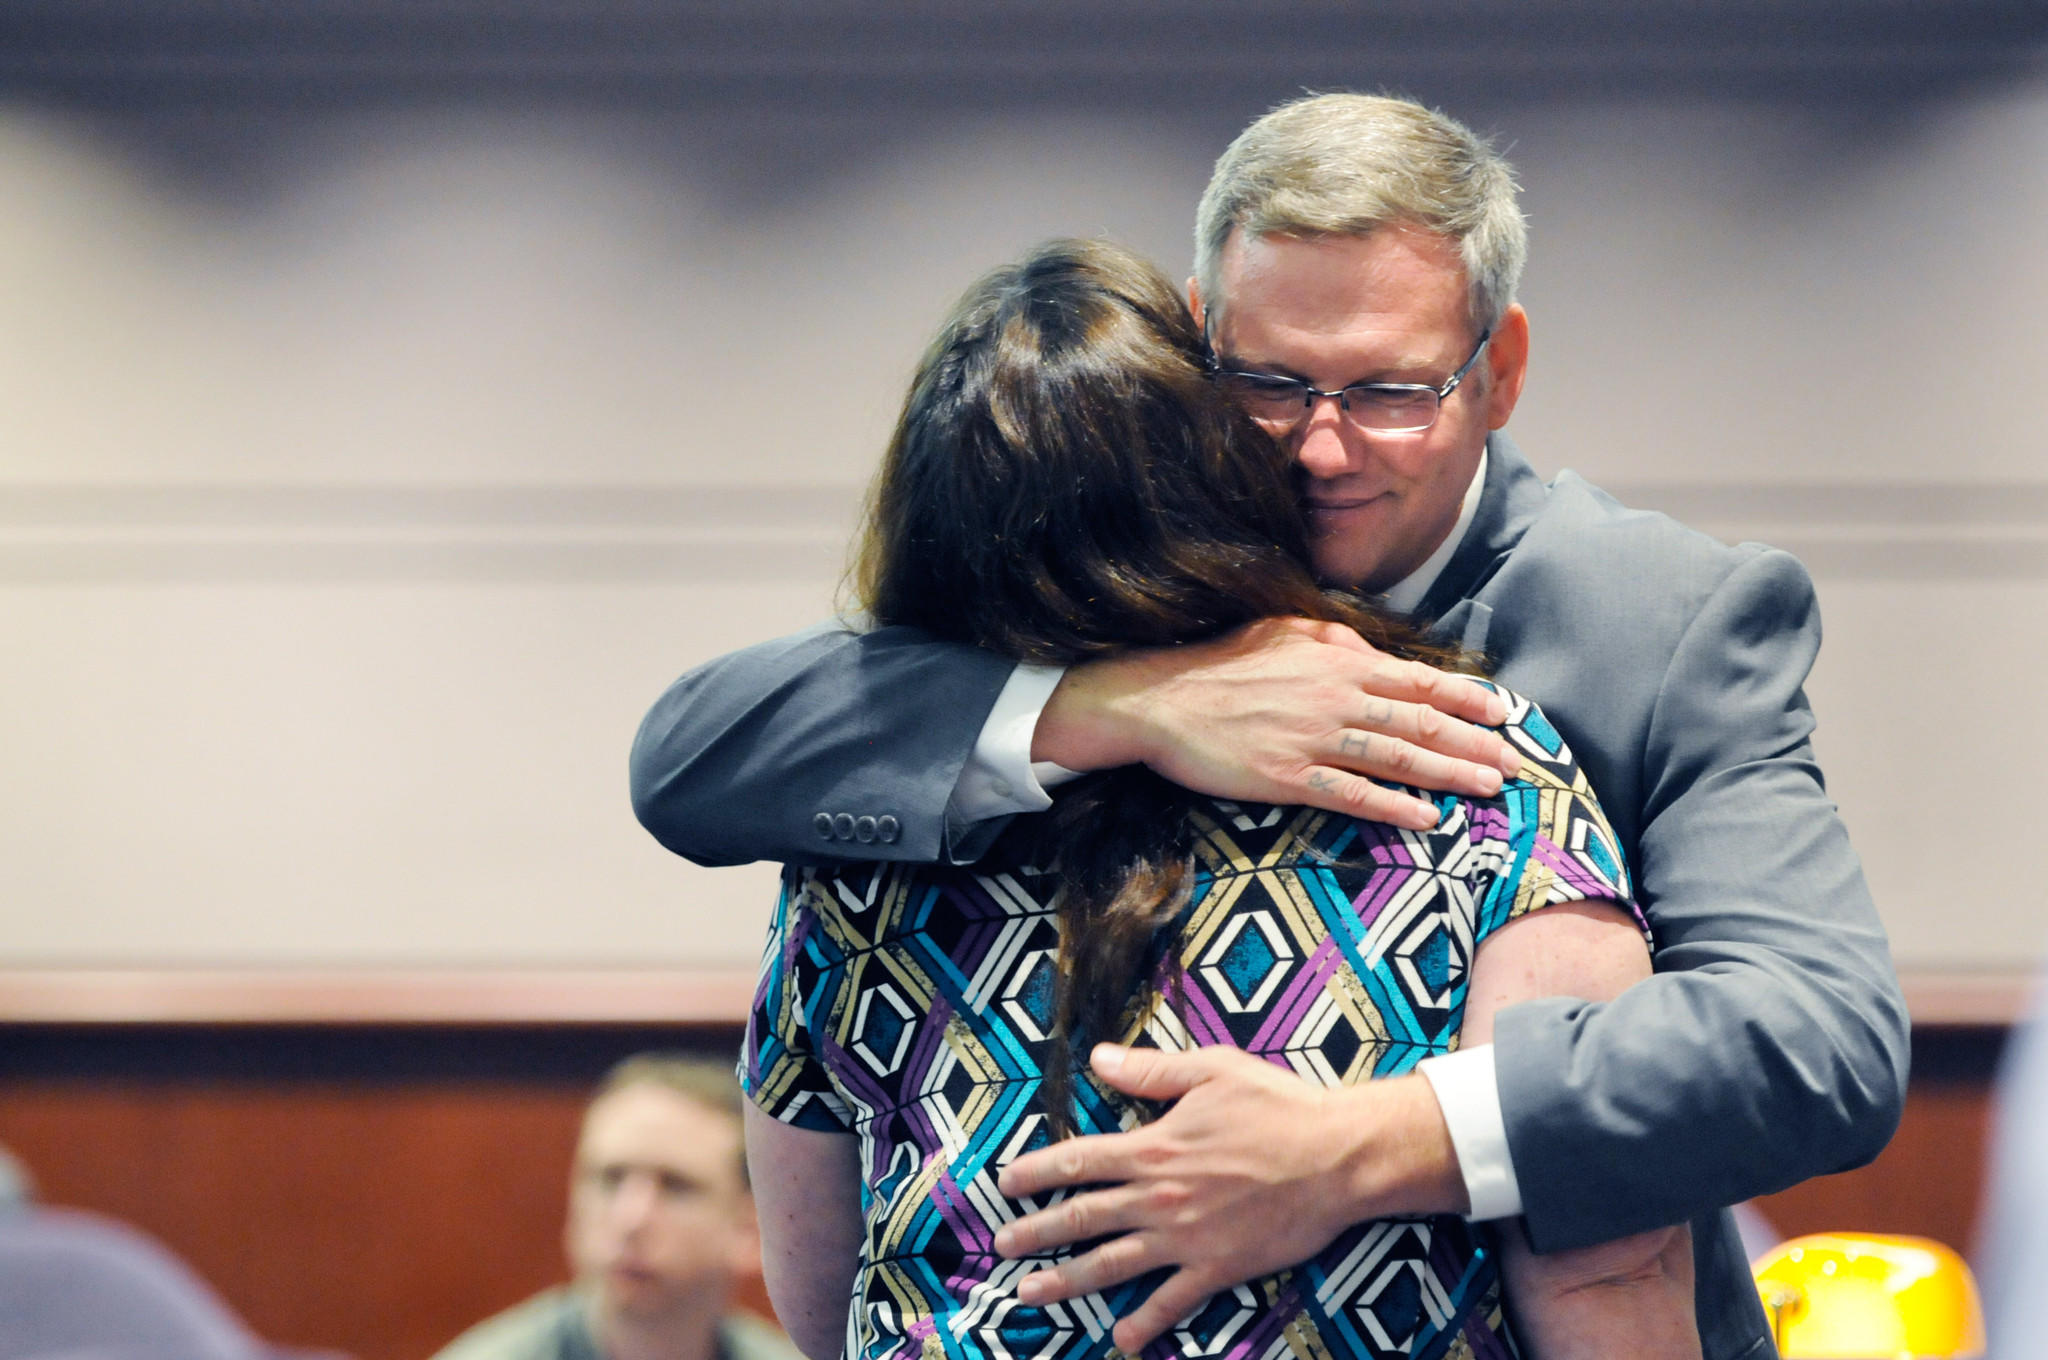 Kenneth Ireland hugs his sister, Lauri Hinojosa, during a break in a hearing before the Office of the Claims Commissioner. Ireland is seeking up to $8 million in compensation from the state after serving 21 years of a 50-year sentence for a rape and murder he did not commit.